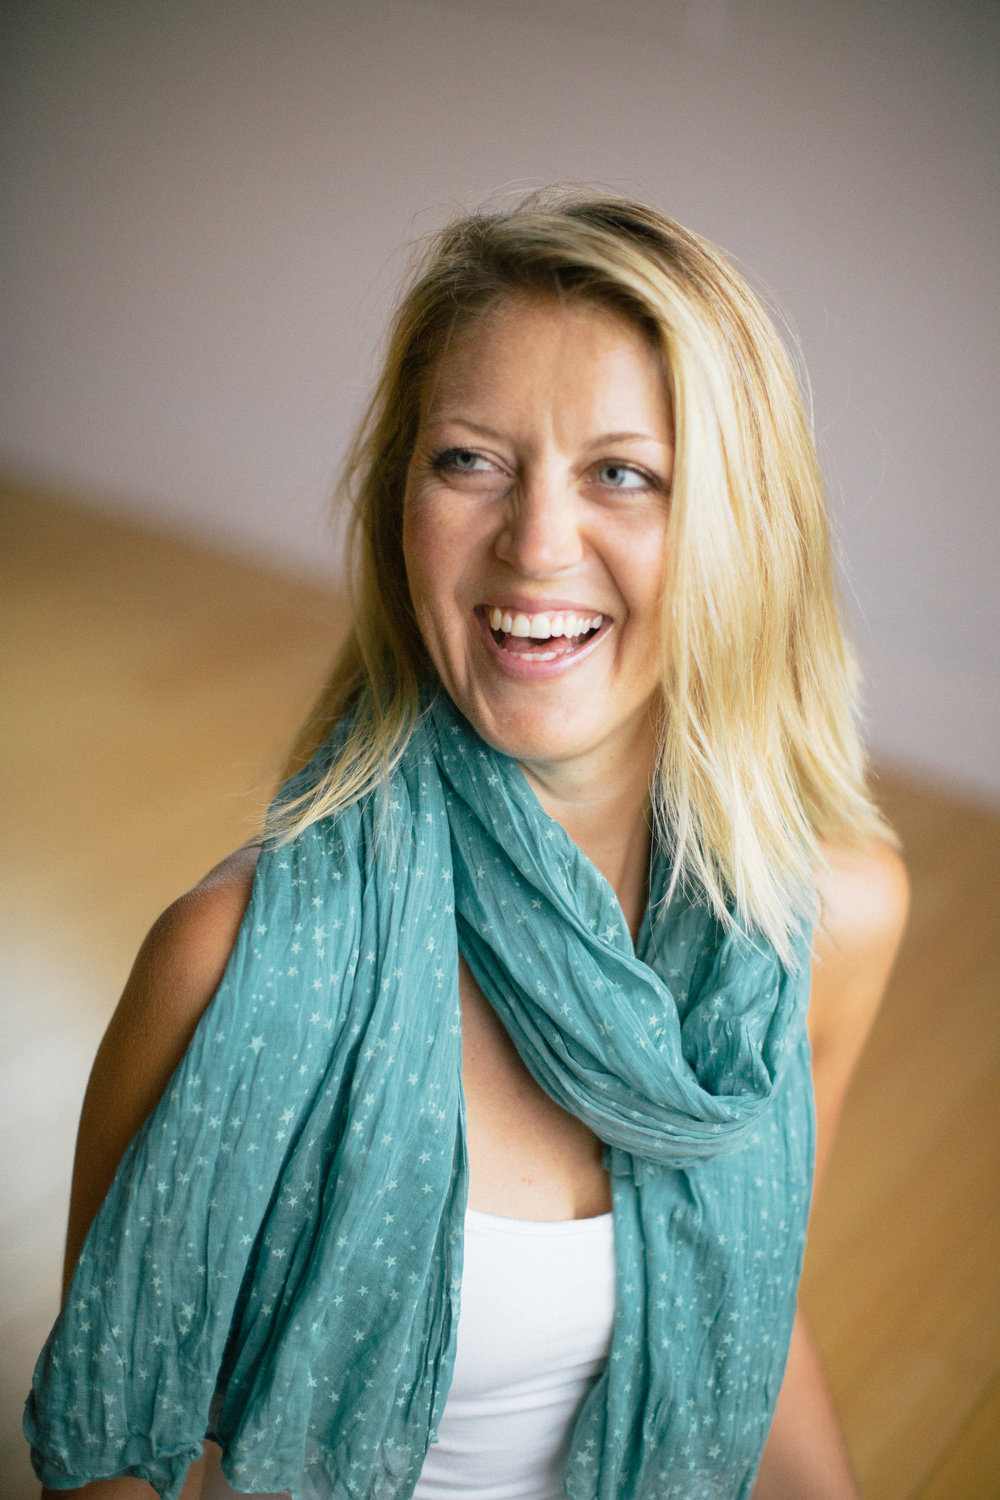 "Ame Wren    , MA    Known for her lighthearted yet highly specific approach to the yoga practice, Ame has become a  nationally recognized go-to teacher for those seeking knowledge and guidance. She is the founder and director of  Boston Yoga School , which offers exceptional yoga studies programs in Boston and beyond. Ame is a  TEDx  presenter, Yoga Journal contributor, Wanderlust Festival featured teacher, and was awarded the honor of ""Best of Boston."""